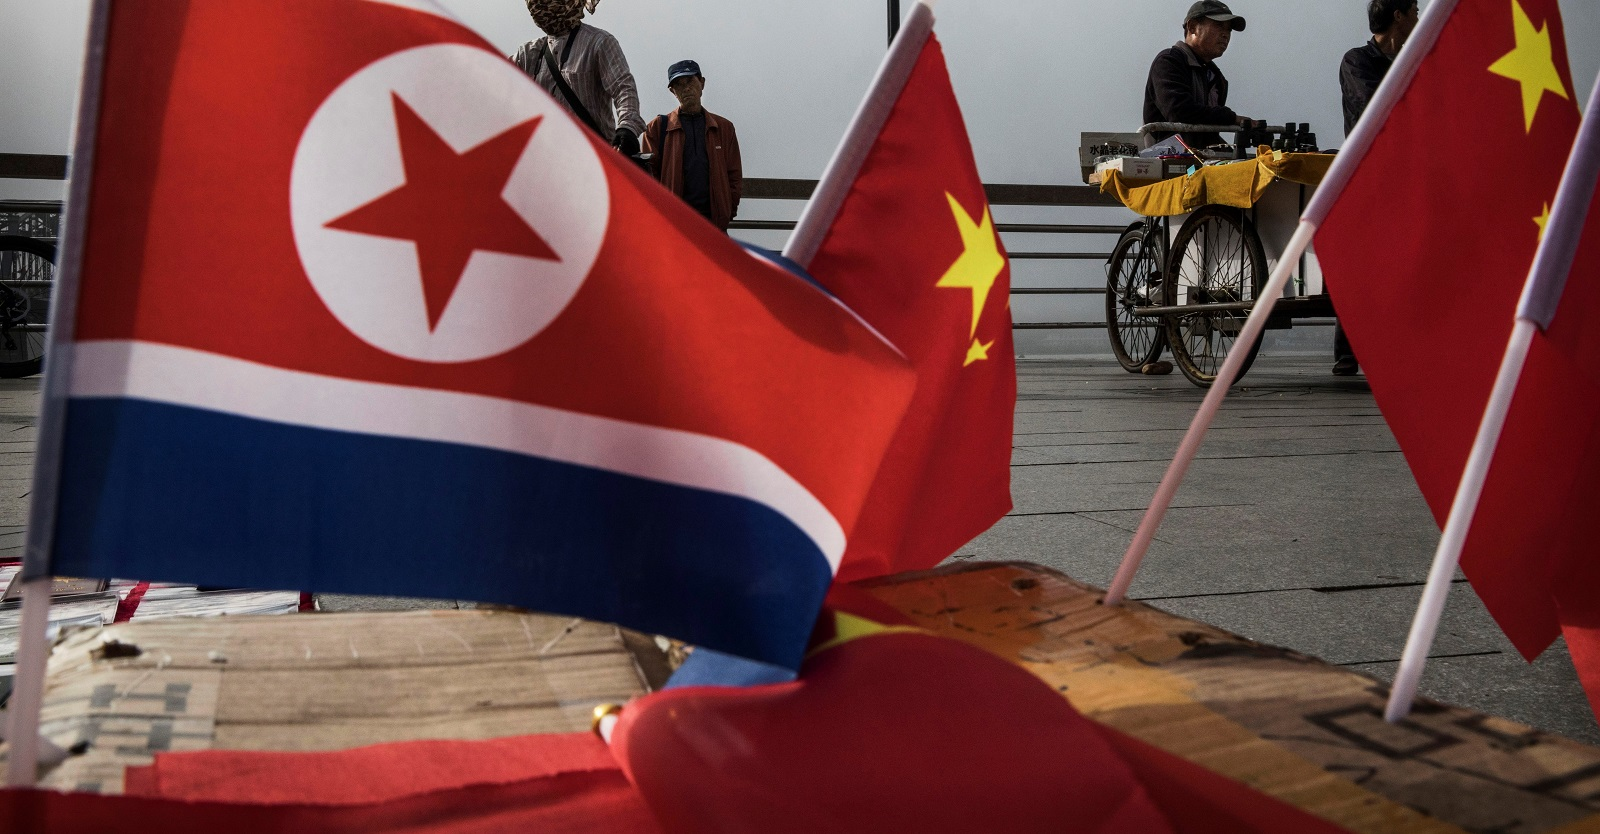 North Korea and China flags for sale in the border city of Dandong in northern China (Photo: Kevin Frayer/Getty Images)